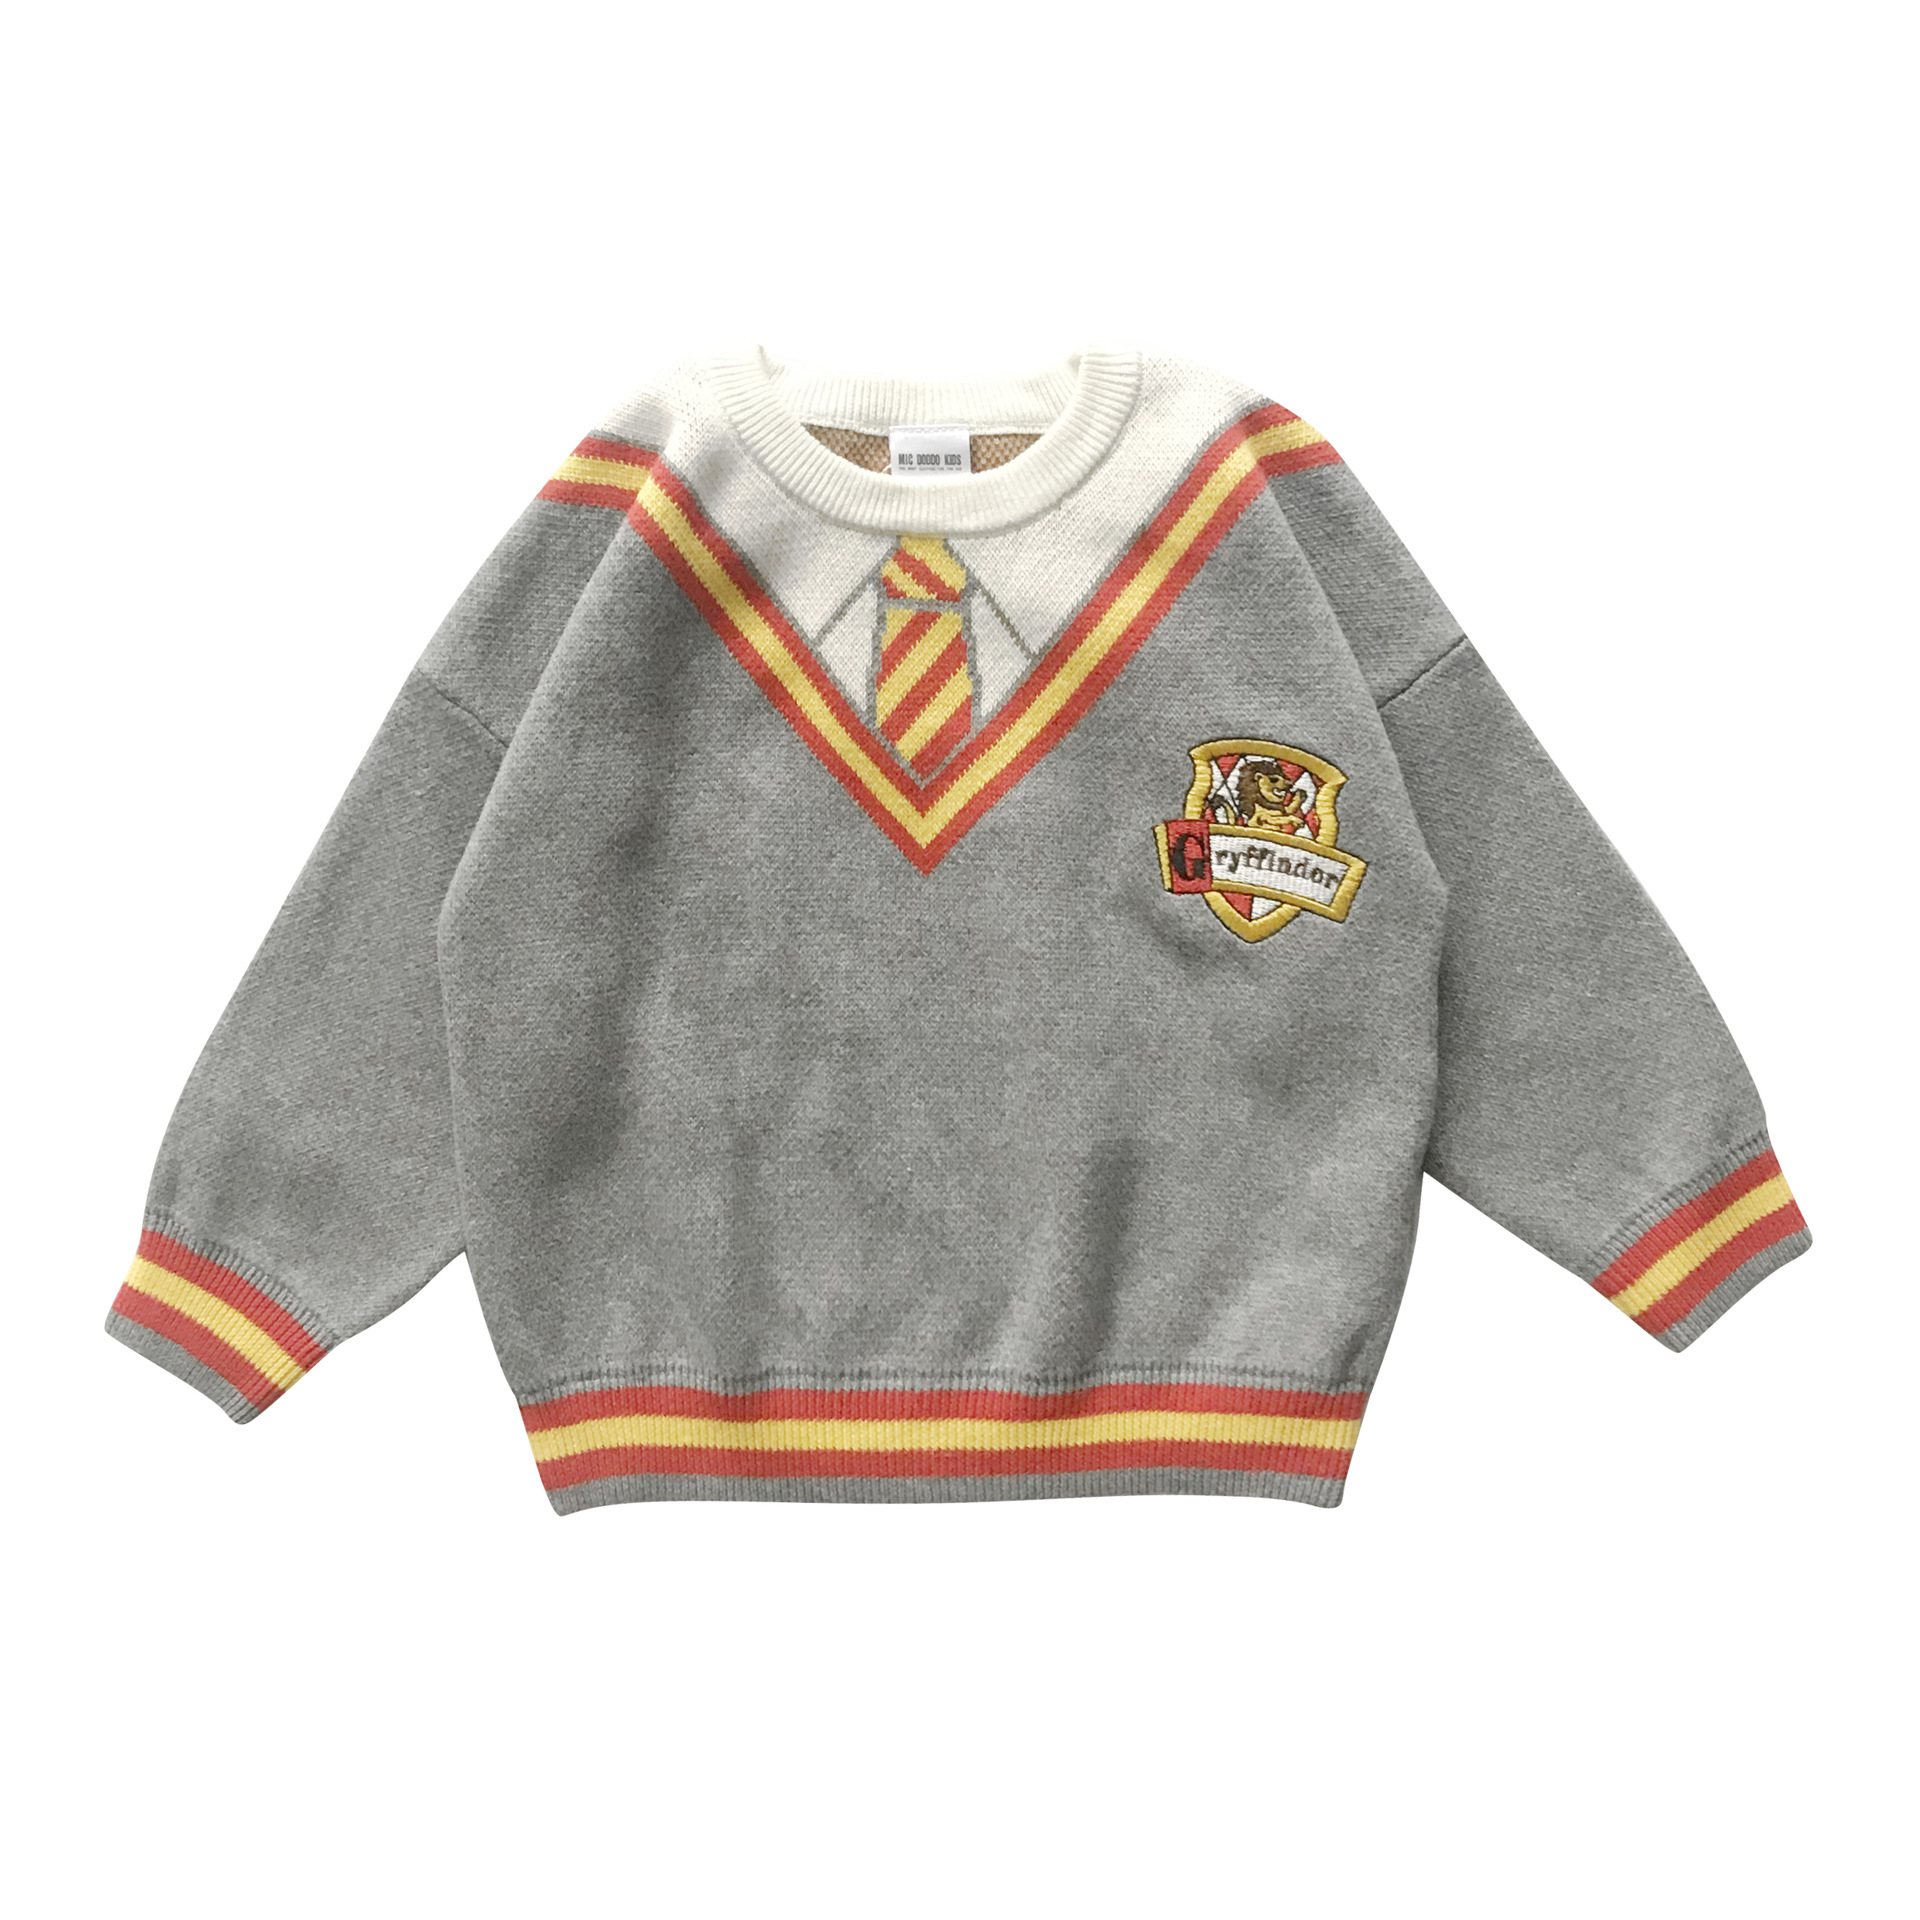 Autumn and Winter New Boys and Girls' Children's Cos Clothes Wizard Sweater Kids Sweaters 1